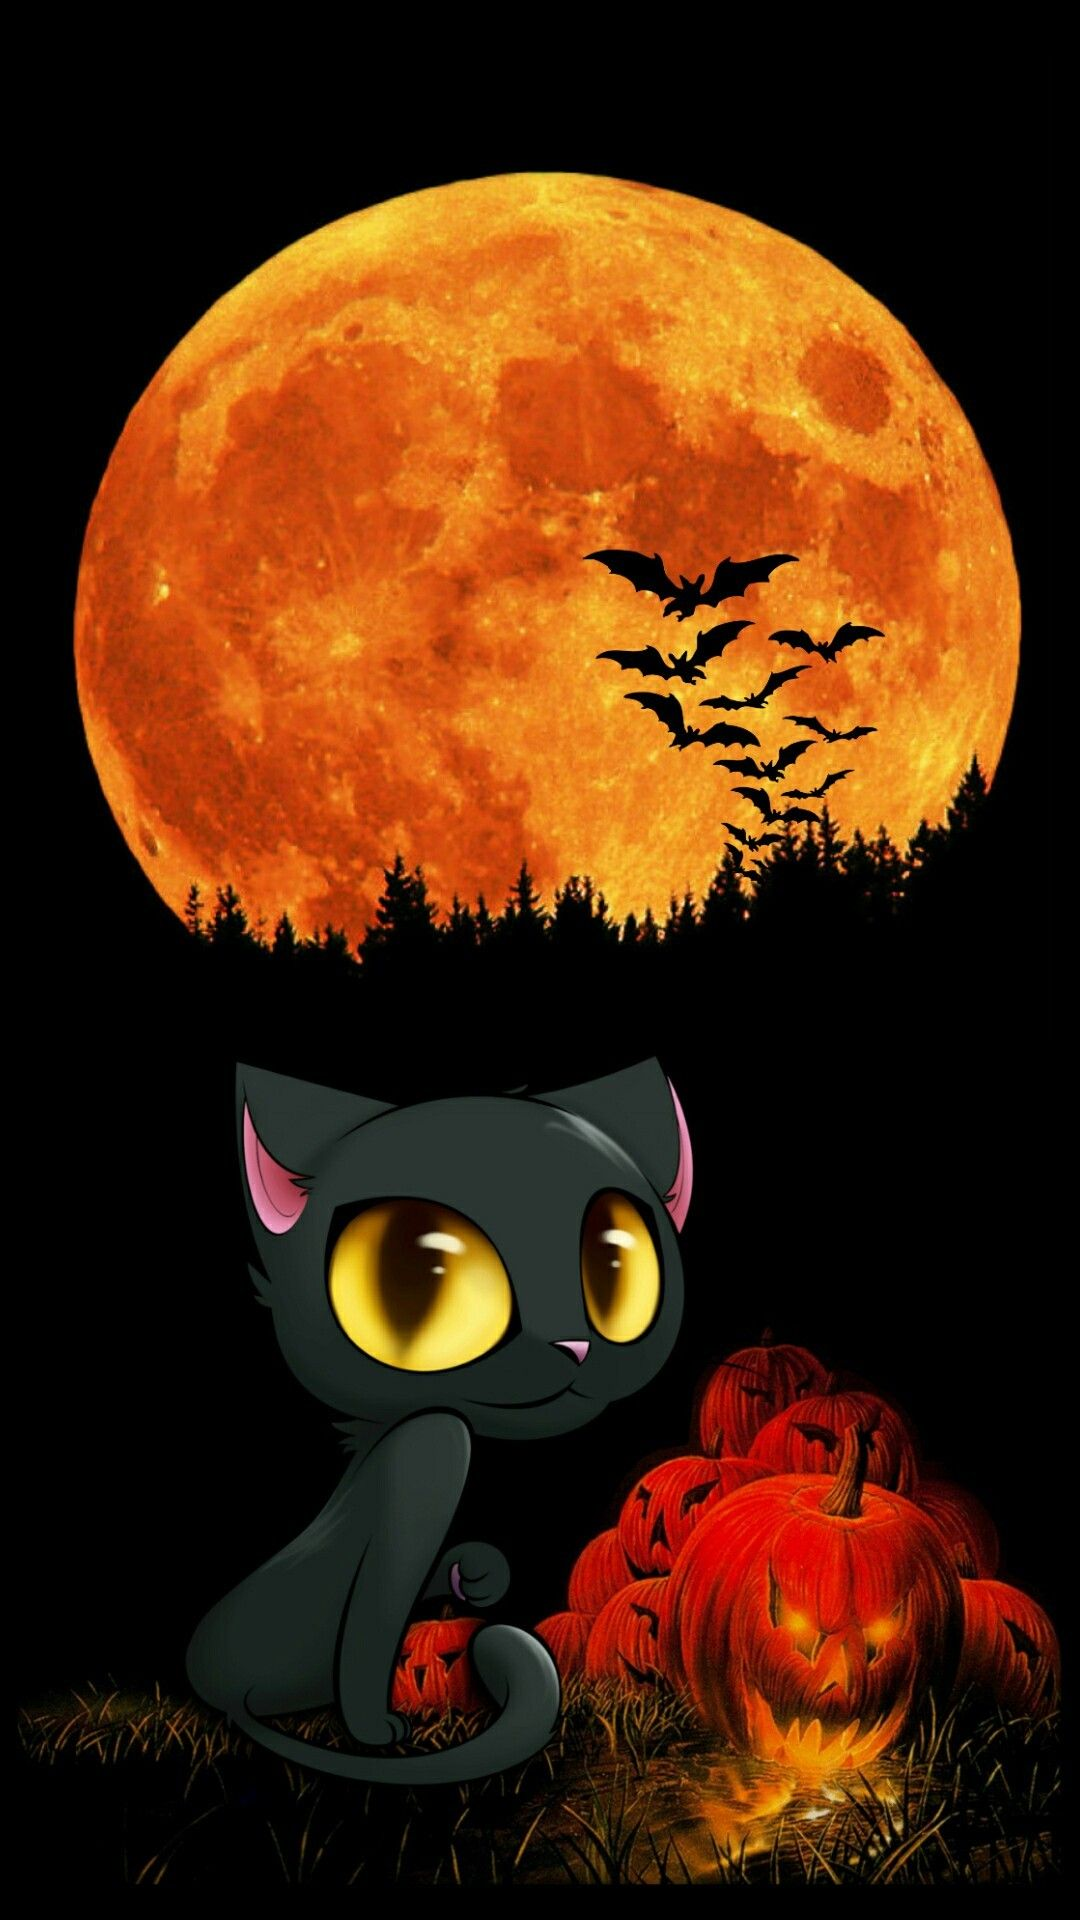 [60] Halloween Wallpaper Images   Android iPhone Desktop HD 1080x1920